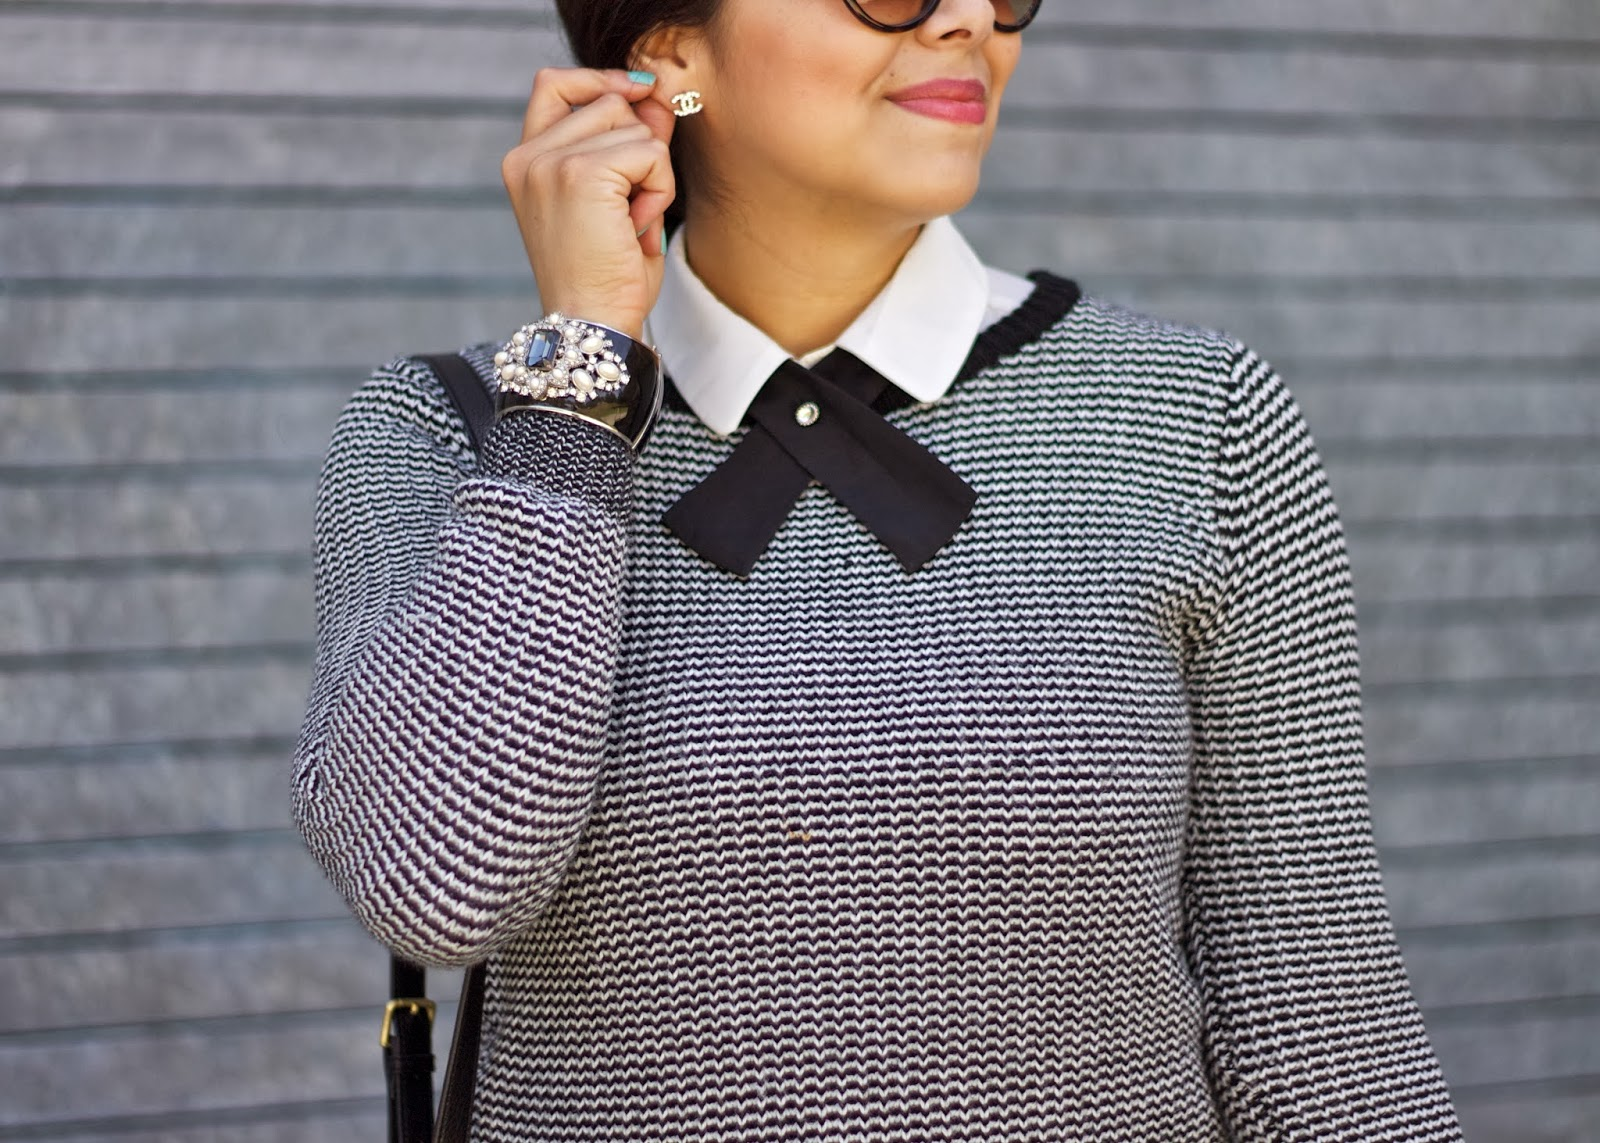 Bowtie and Chanel Earrings, lilbitsofchic Outfit Details, SD Style Blogger